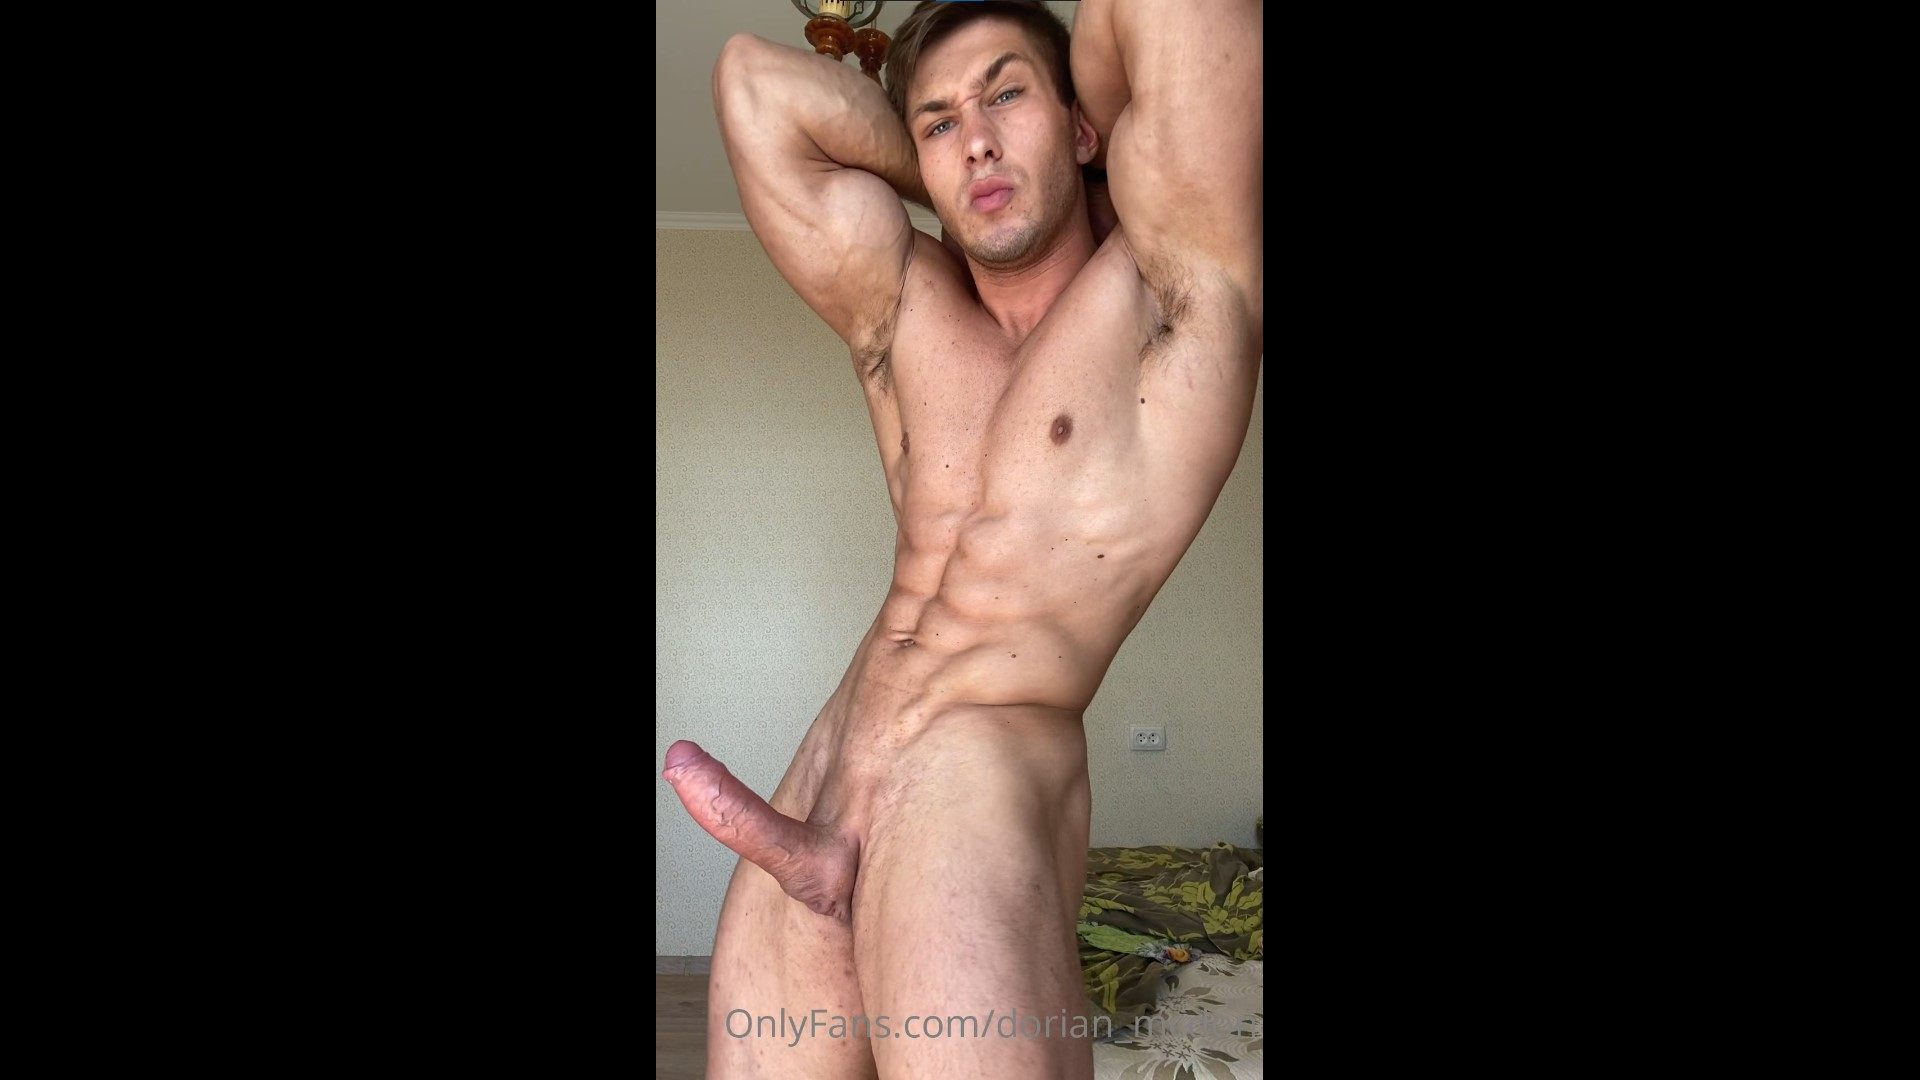 Showing off my body and hard cock - Dorian McDon